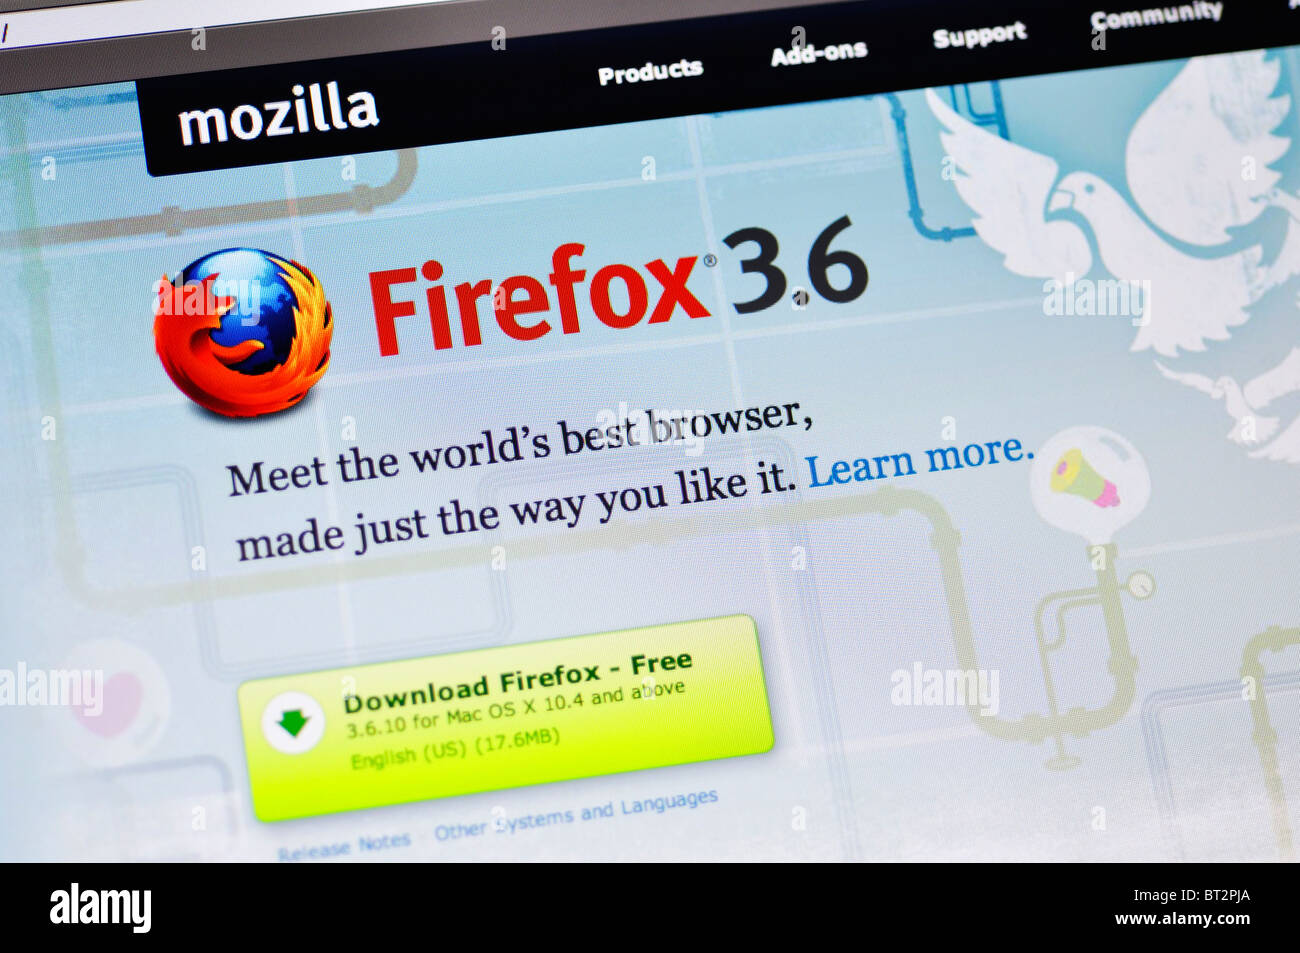 Mozilla Firefox Stock Photos & Mozilla Firefox Stock Images - Alamy